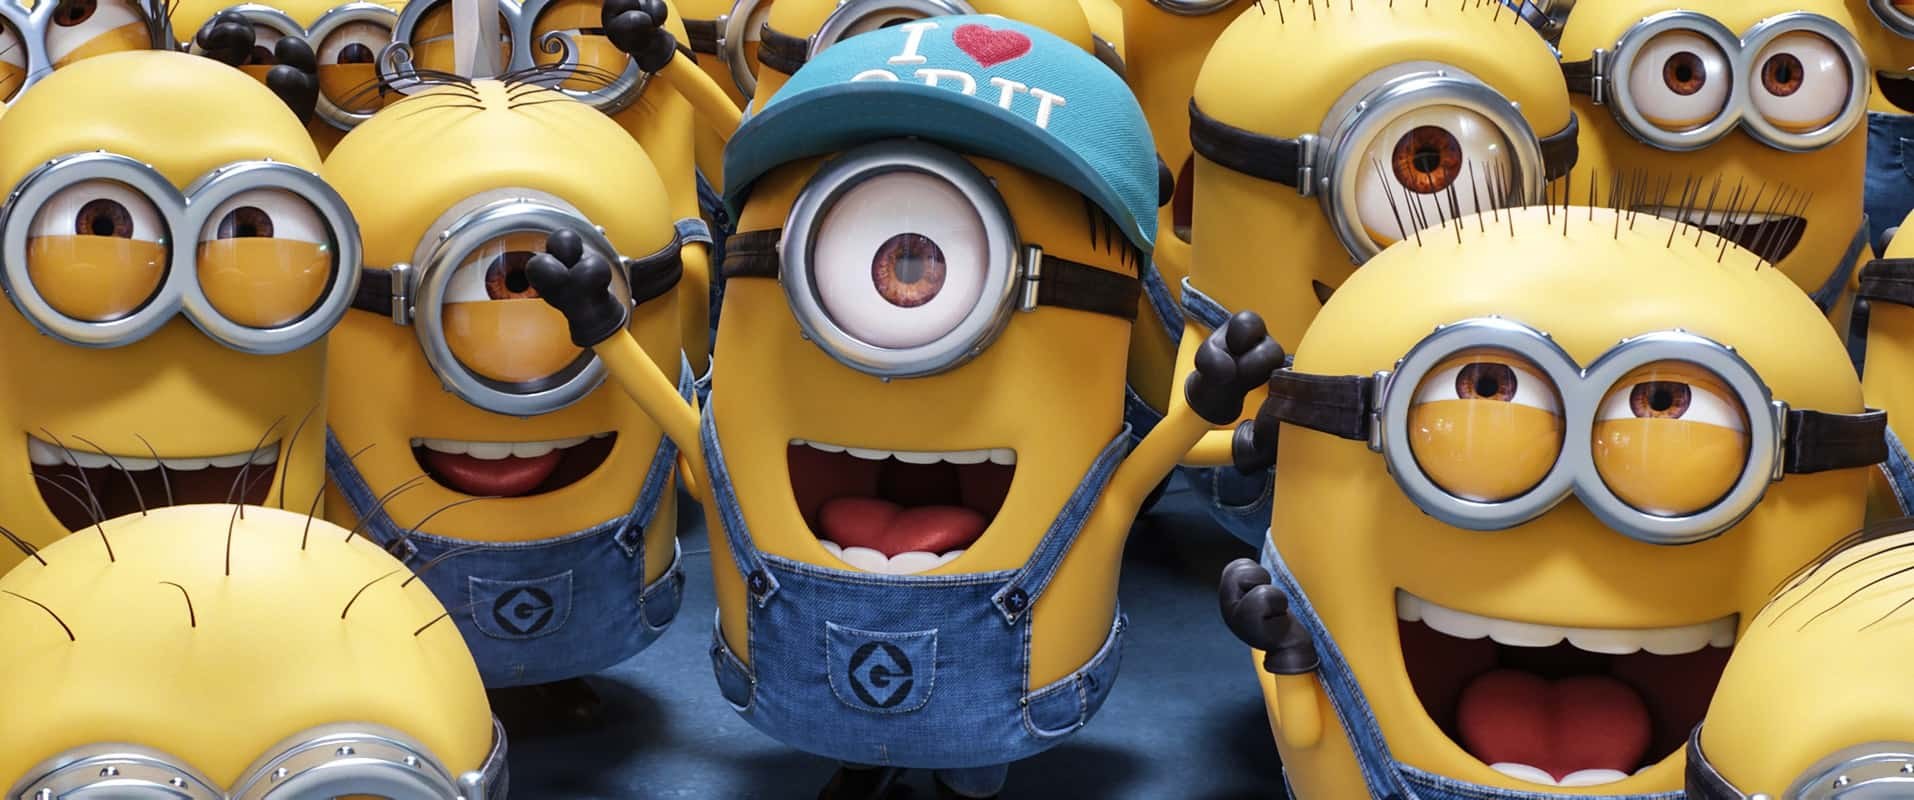 minions from despicable Me 3 special edition(1)